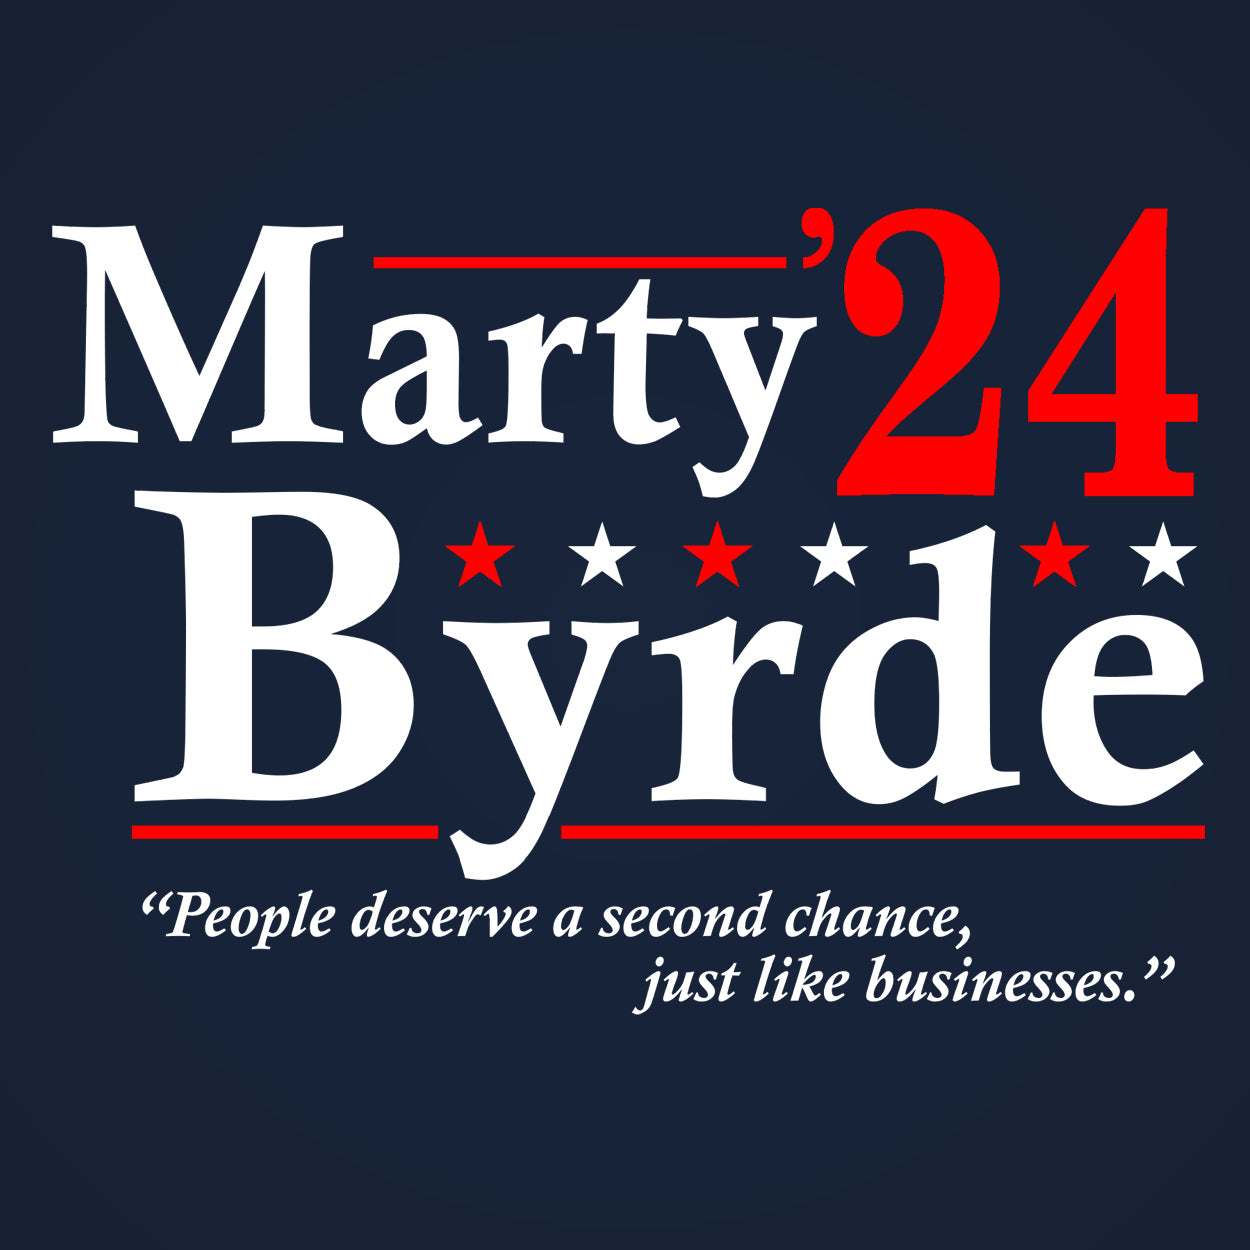 Marty Byrde 2024 Election